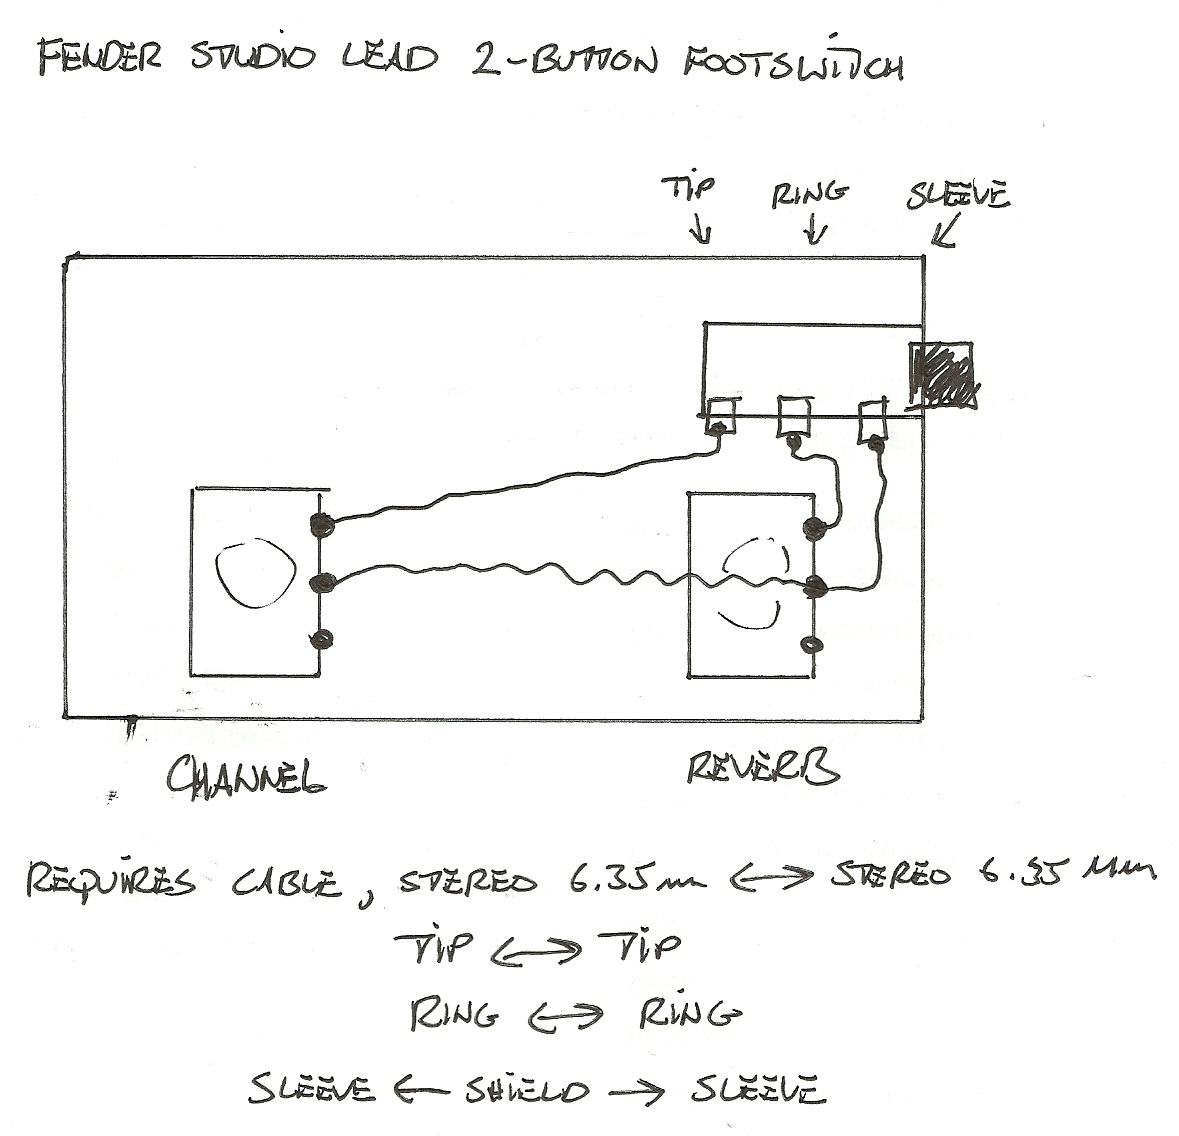 hight resolution of wiring diagram guitar amp footswitch wiring diagram schemawiring diagram for studio lead footswitch jpg wiring diagram